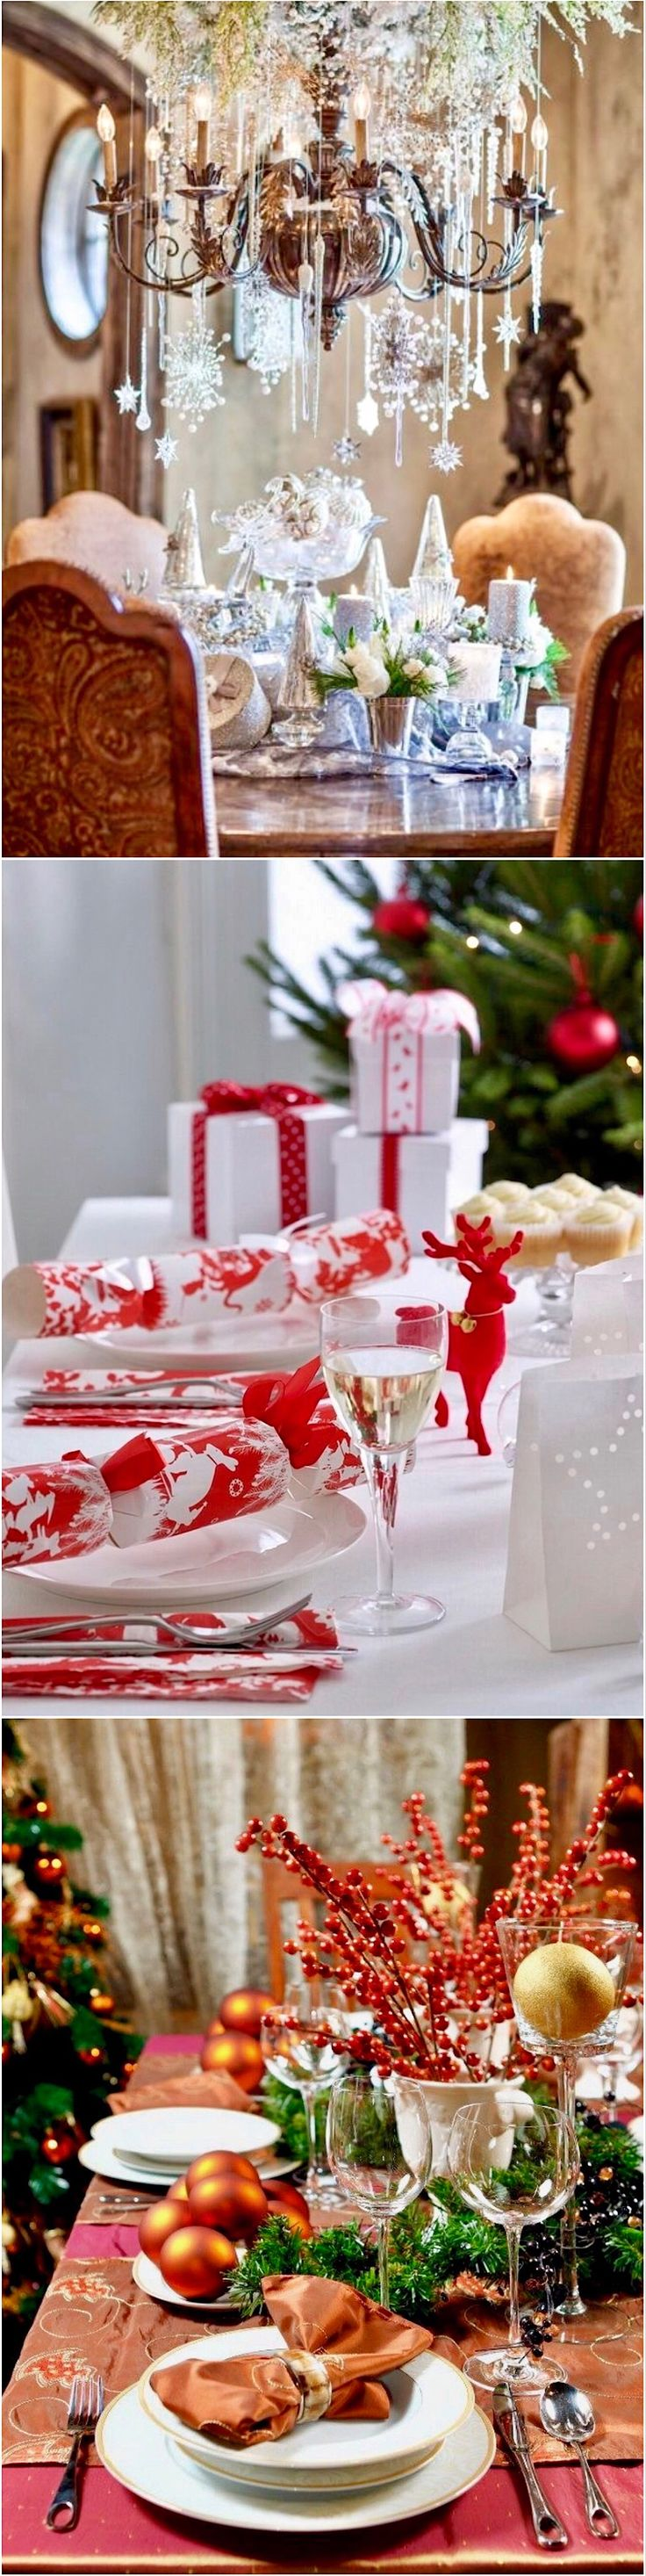 Contemporary Art Sites Top Christmas Table Decorating Ideas